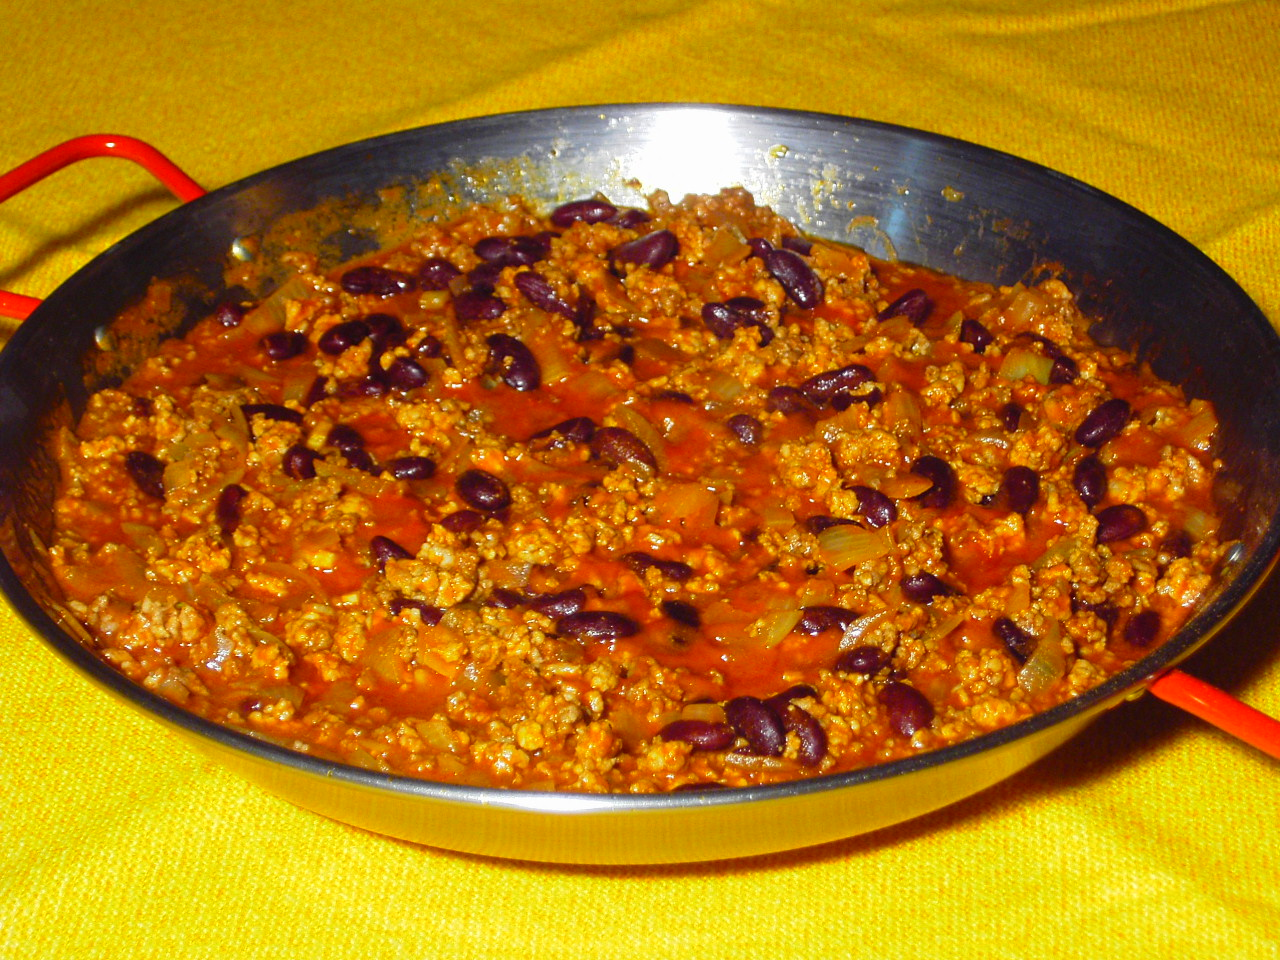 File:Chili con carne.jpg - Wikimedia Commons